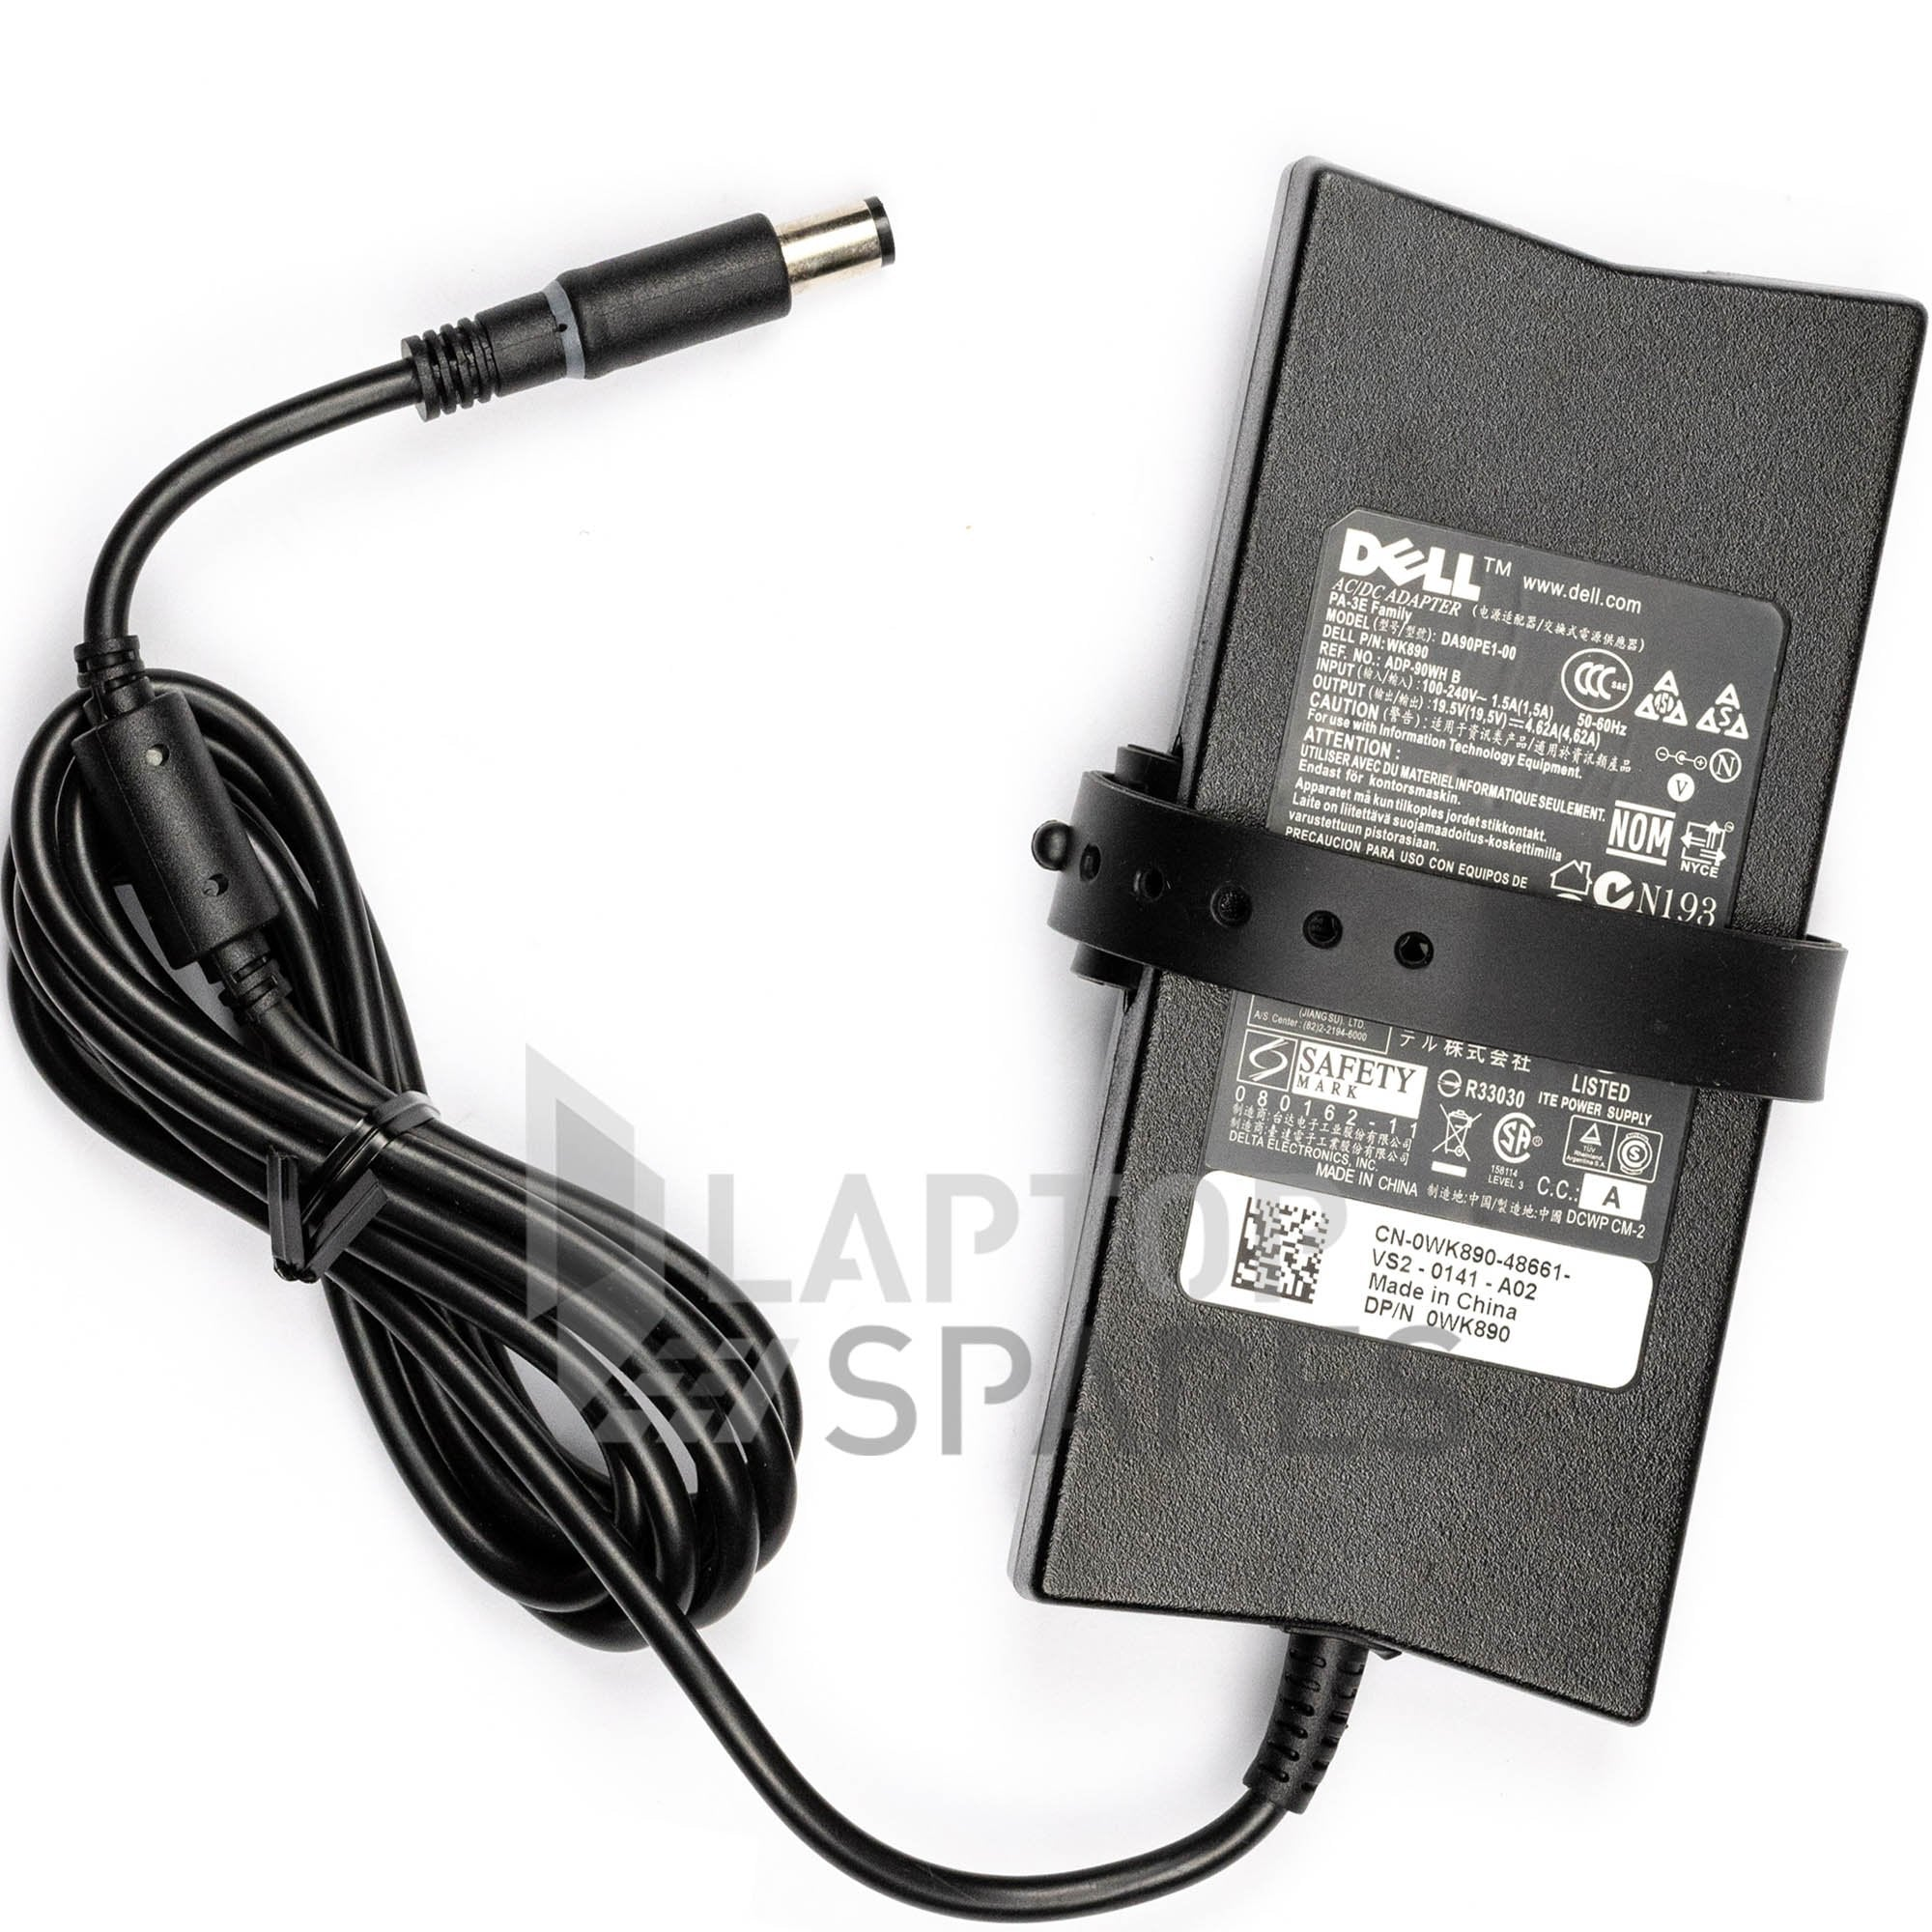 Dell Precision Mobile M20 M2300 Laptop Slim AC Adapter Charger